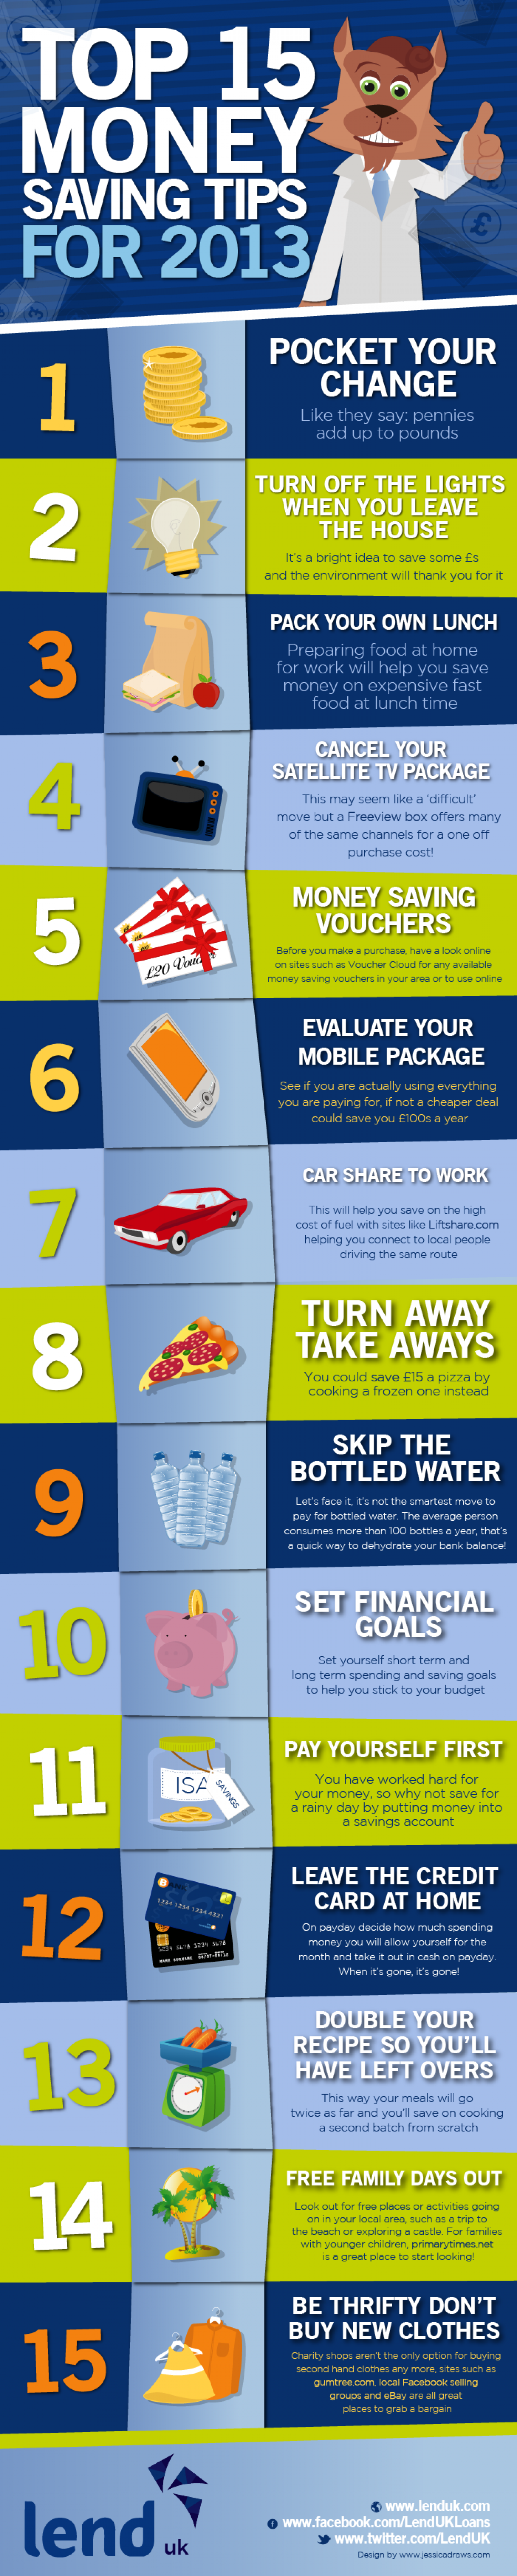 Top 15 Money Saving Tips For 2013 Infographic